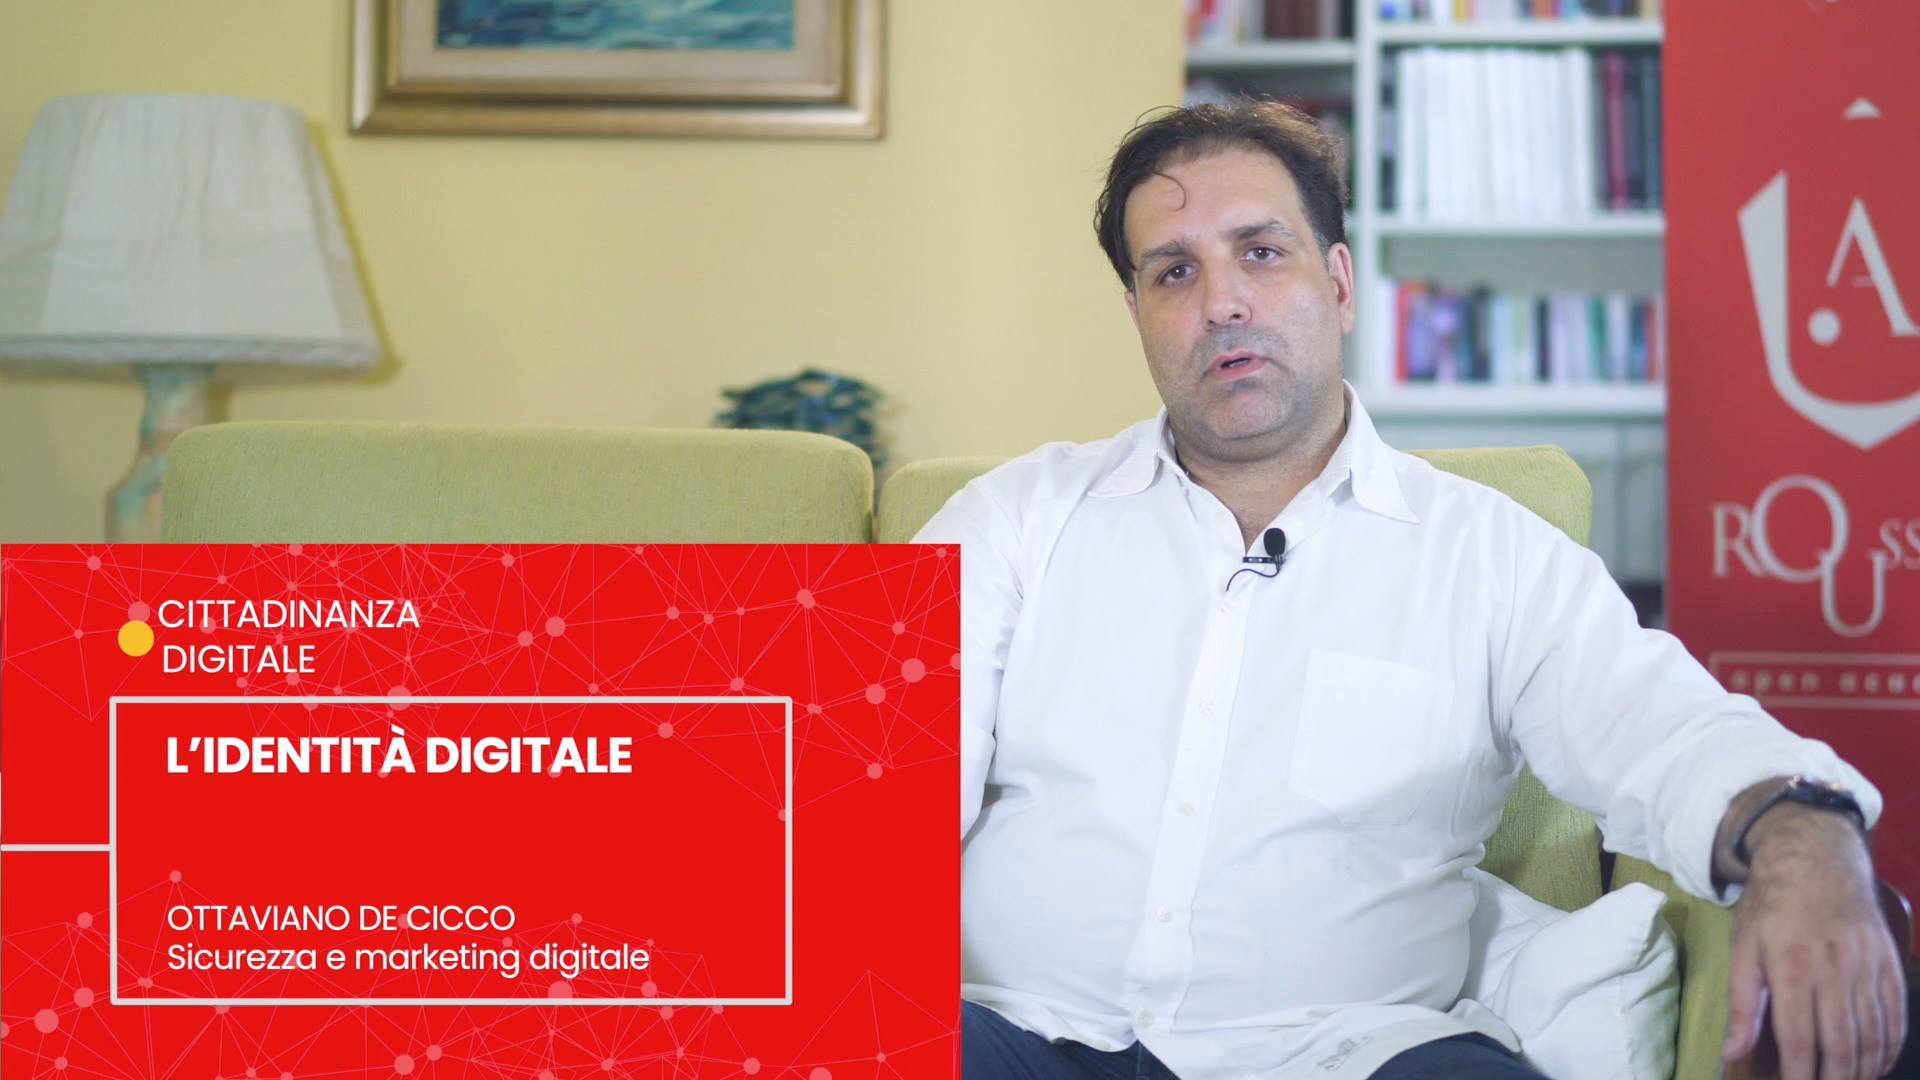 L'INDENTITÀ DIGITALE